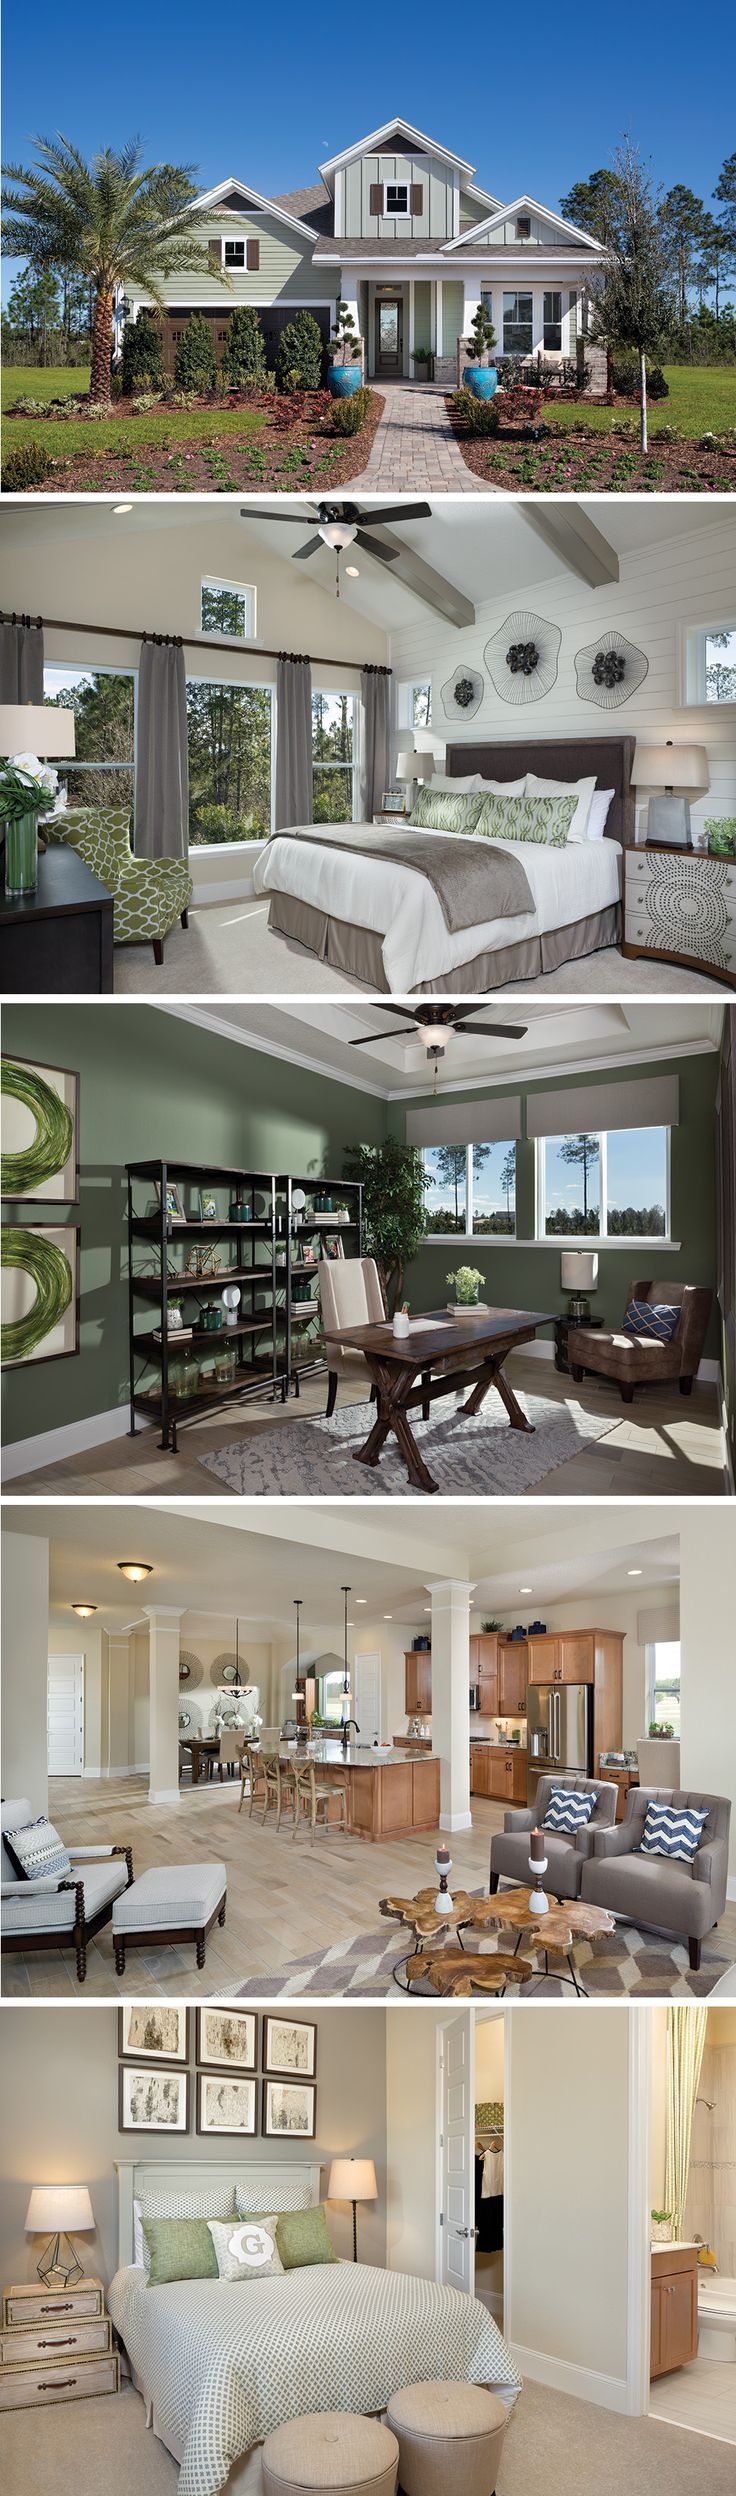 The Cloverwood by David Weekley Homes in Shearwater is a 4 or 5 bedroom floorplan that features a private Lanai, tray ceilings in the dining  room and owners bedroom, and an open kitchen and family room layout. Custom home upgrades include a guest suite, an extended Lanai, or a bathtub in the owners bathroom.